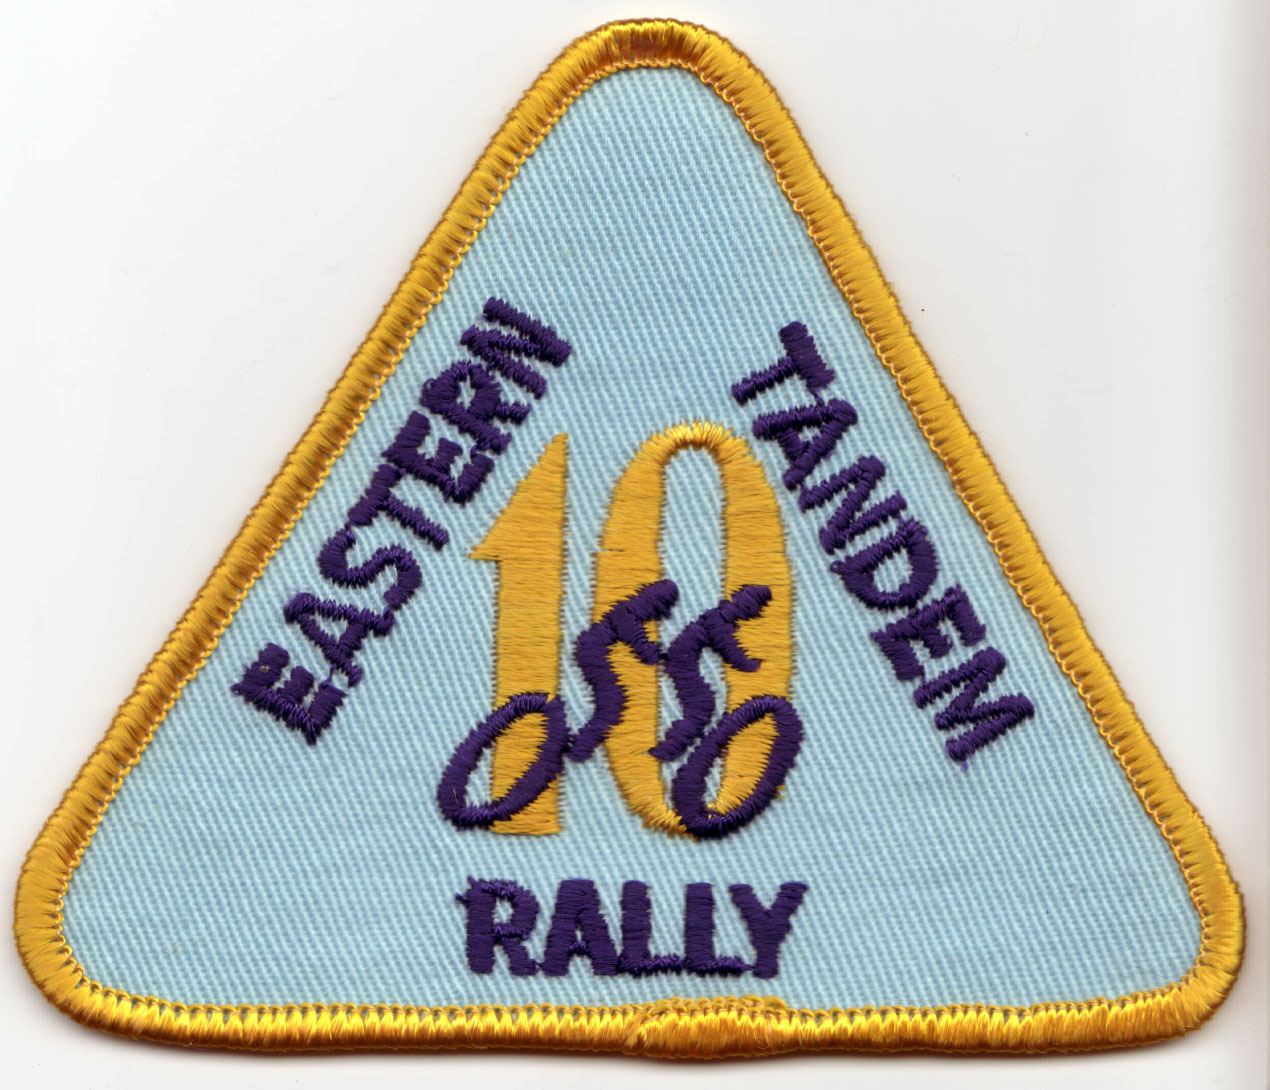 ETR 10-Year Participation Patch